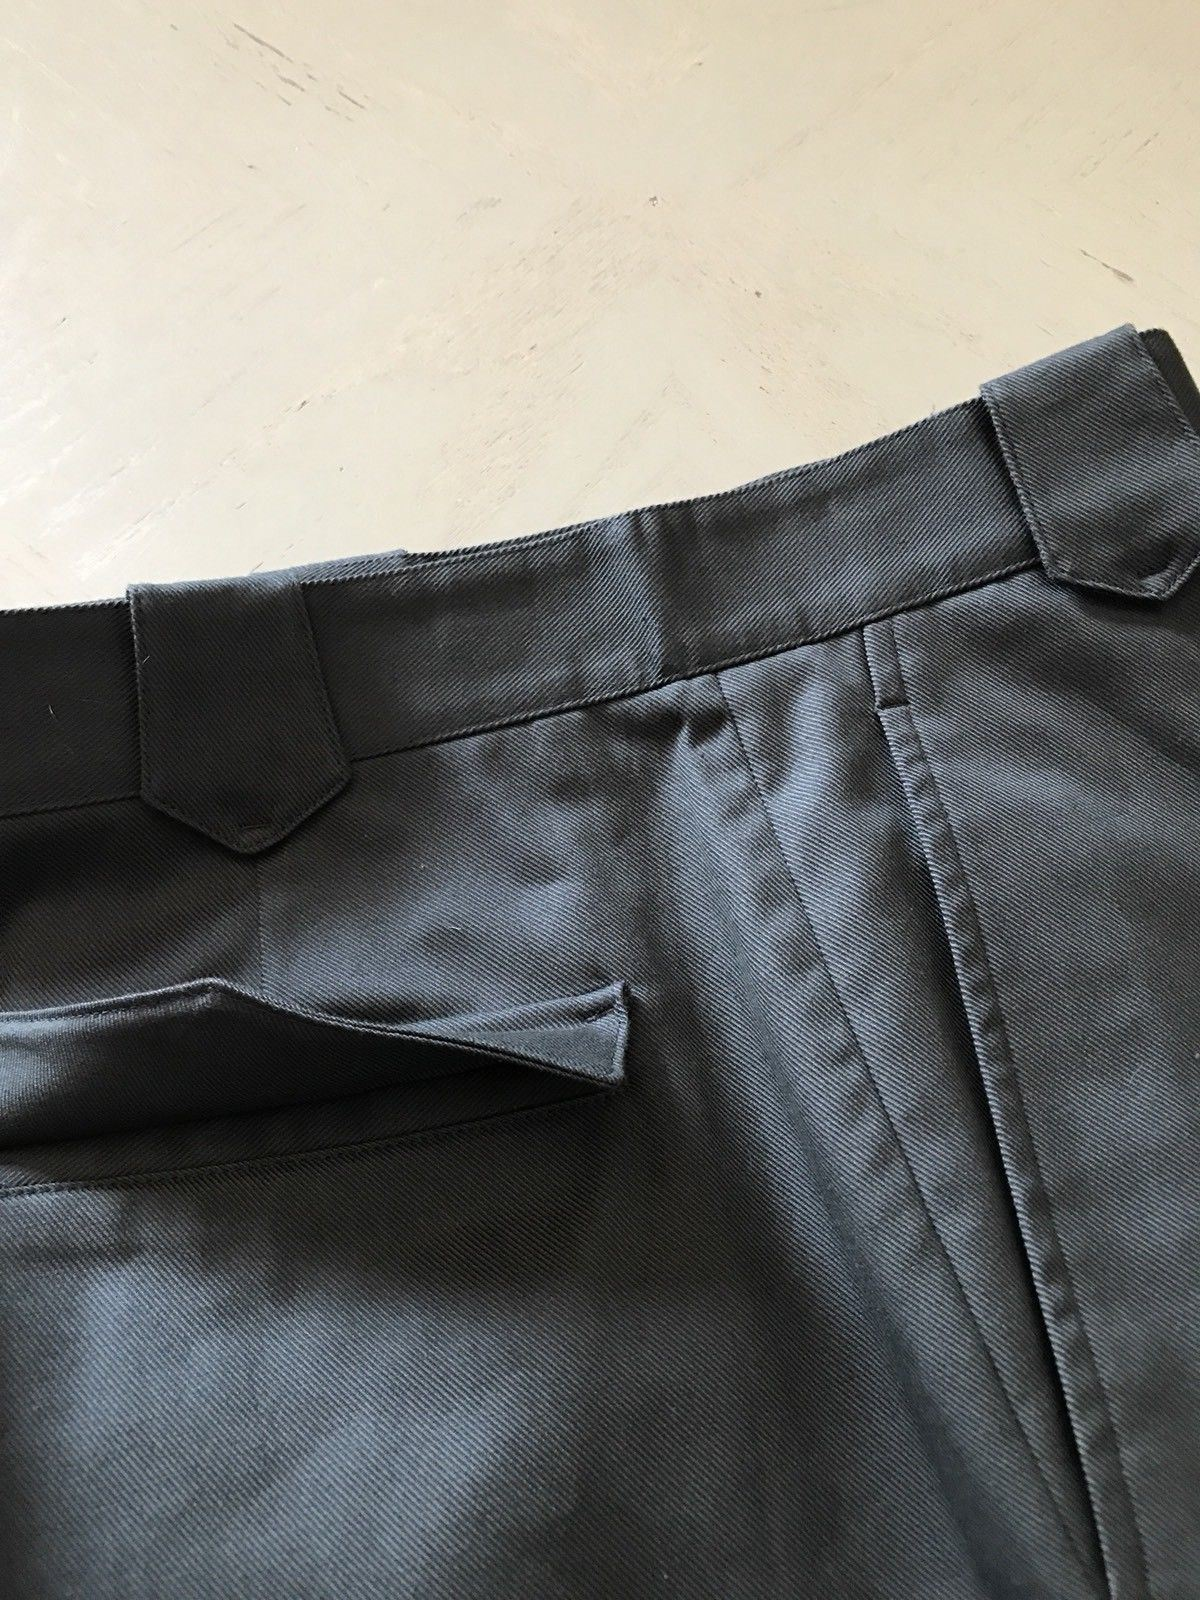 NWT $895 Giorgio Armani Mens Pants Dark Green 34 US  Italy - BAYSUPERSTORE